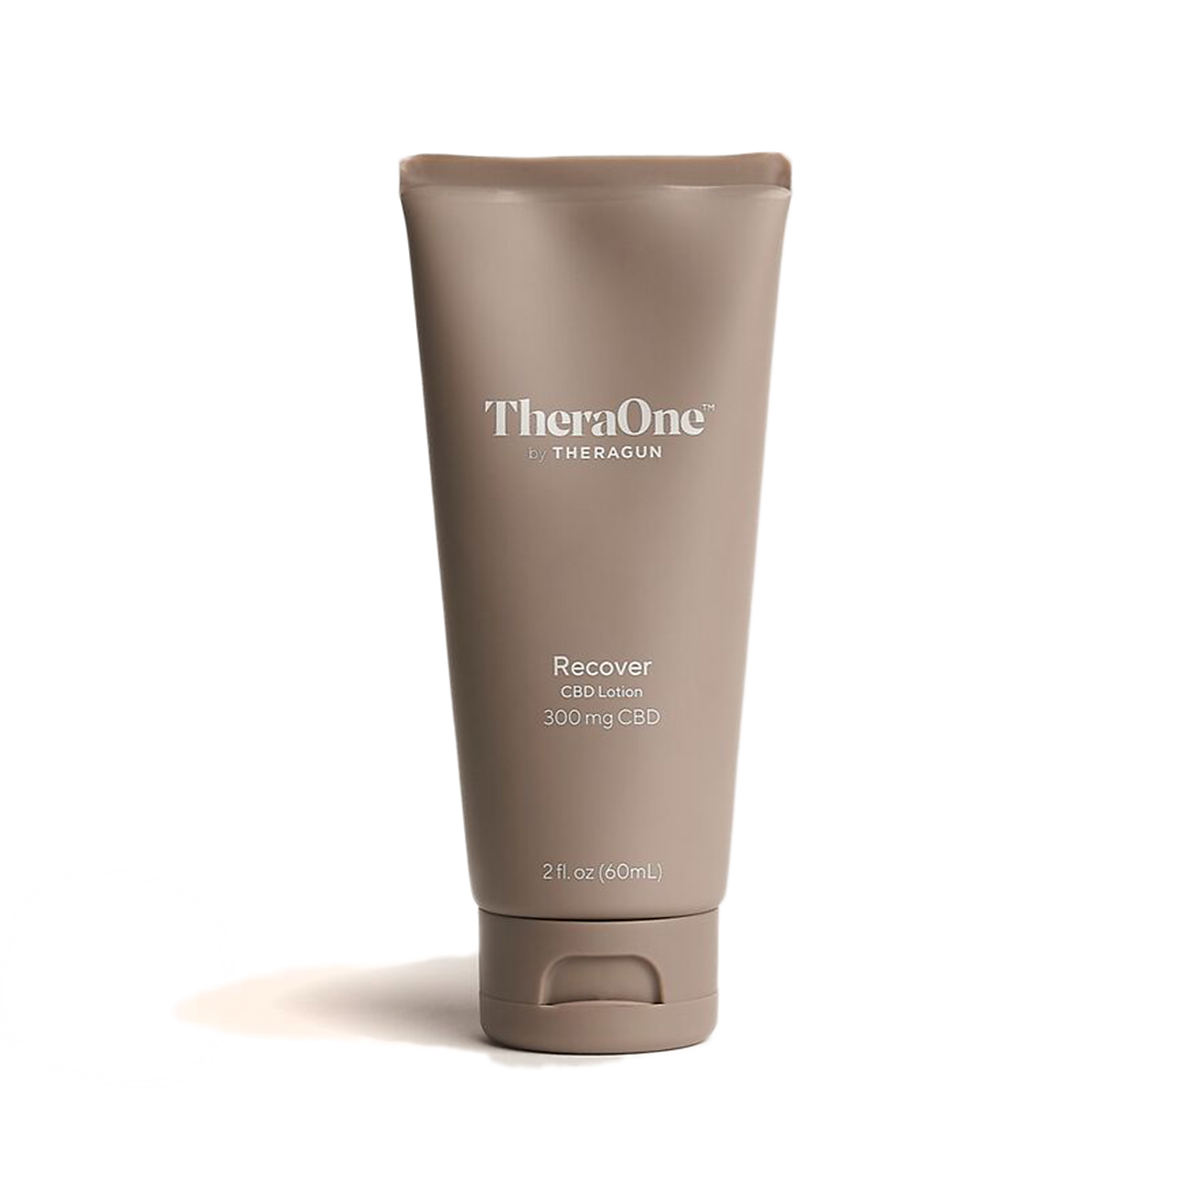 TheraOne Recover CBD Lotion - Size: One Size, , large, image 1